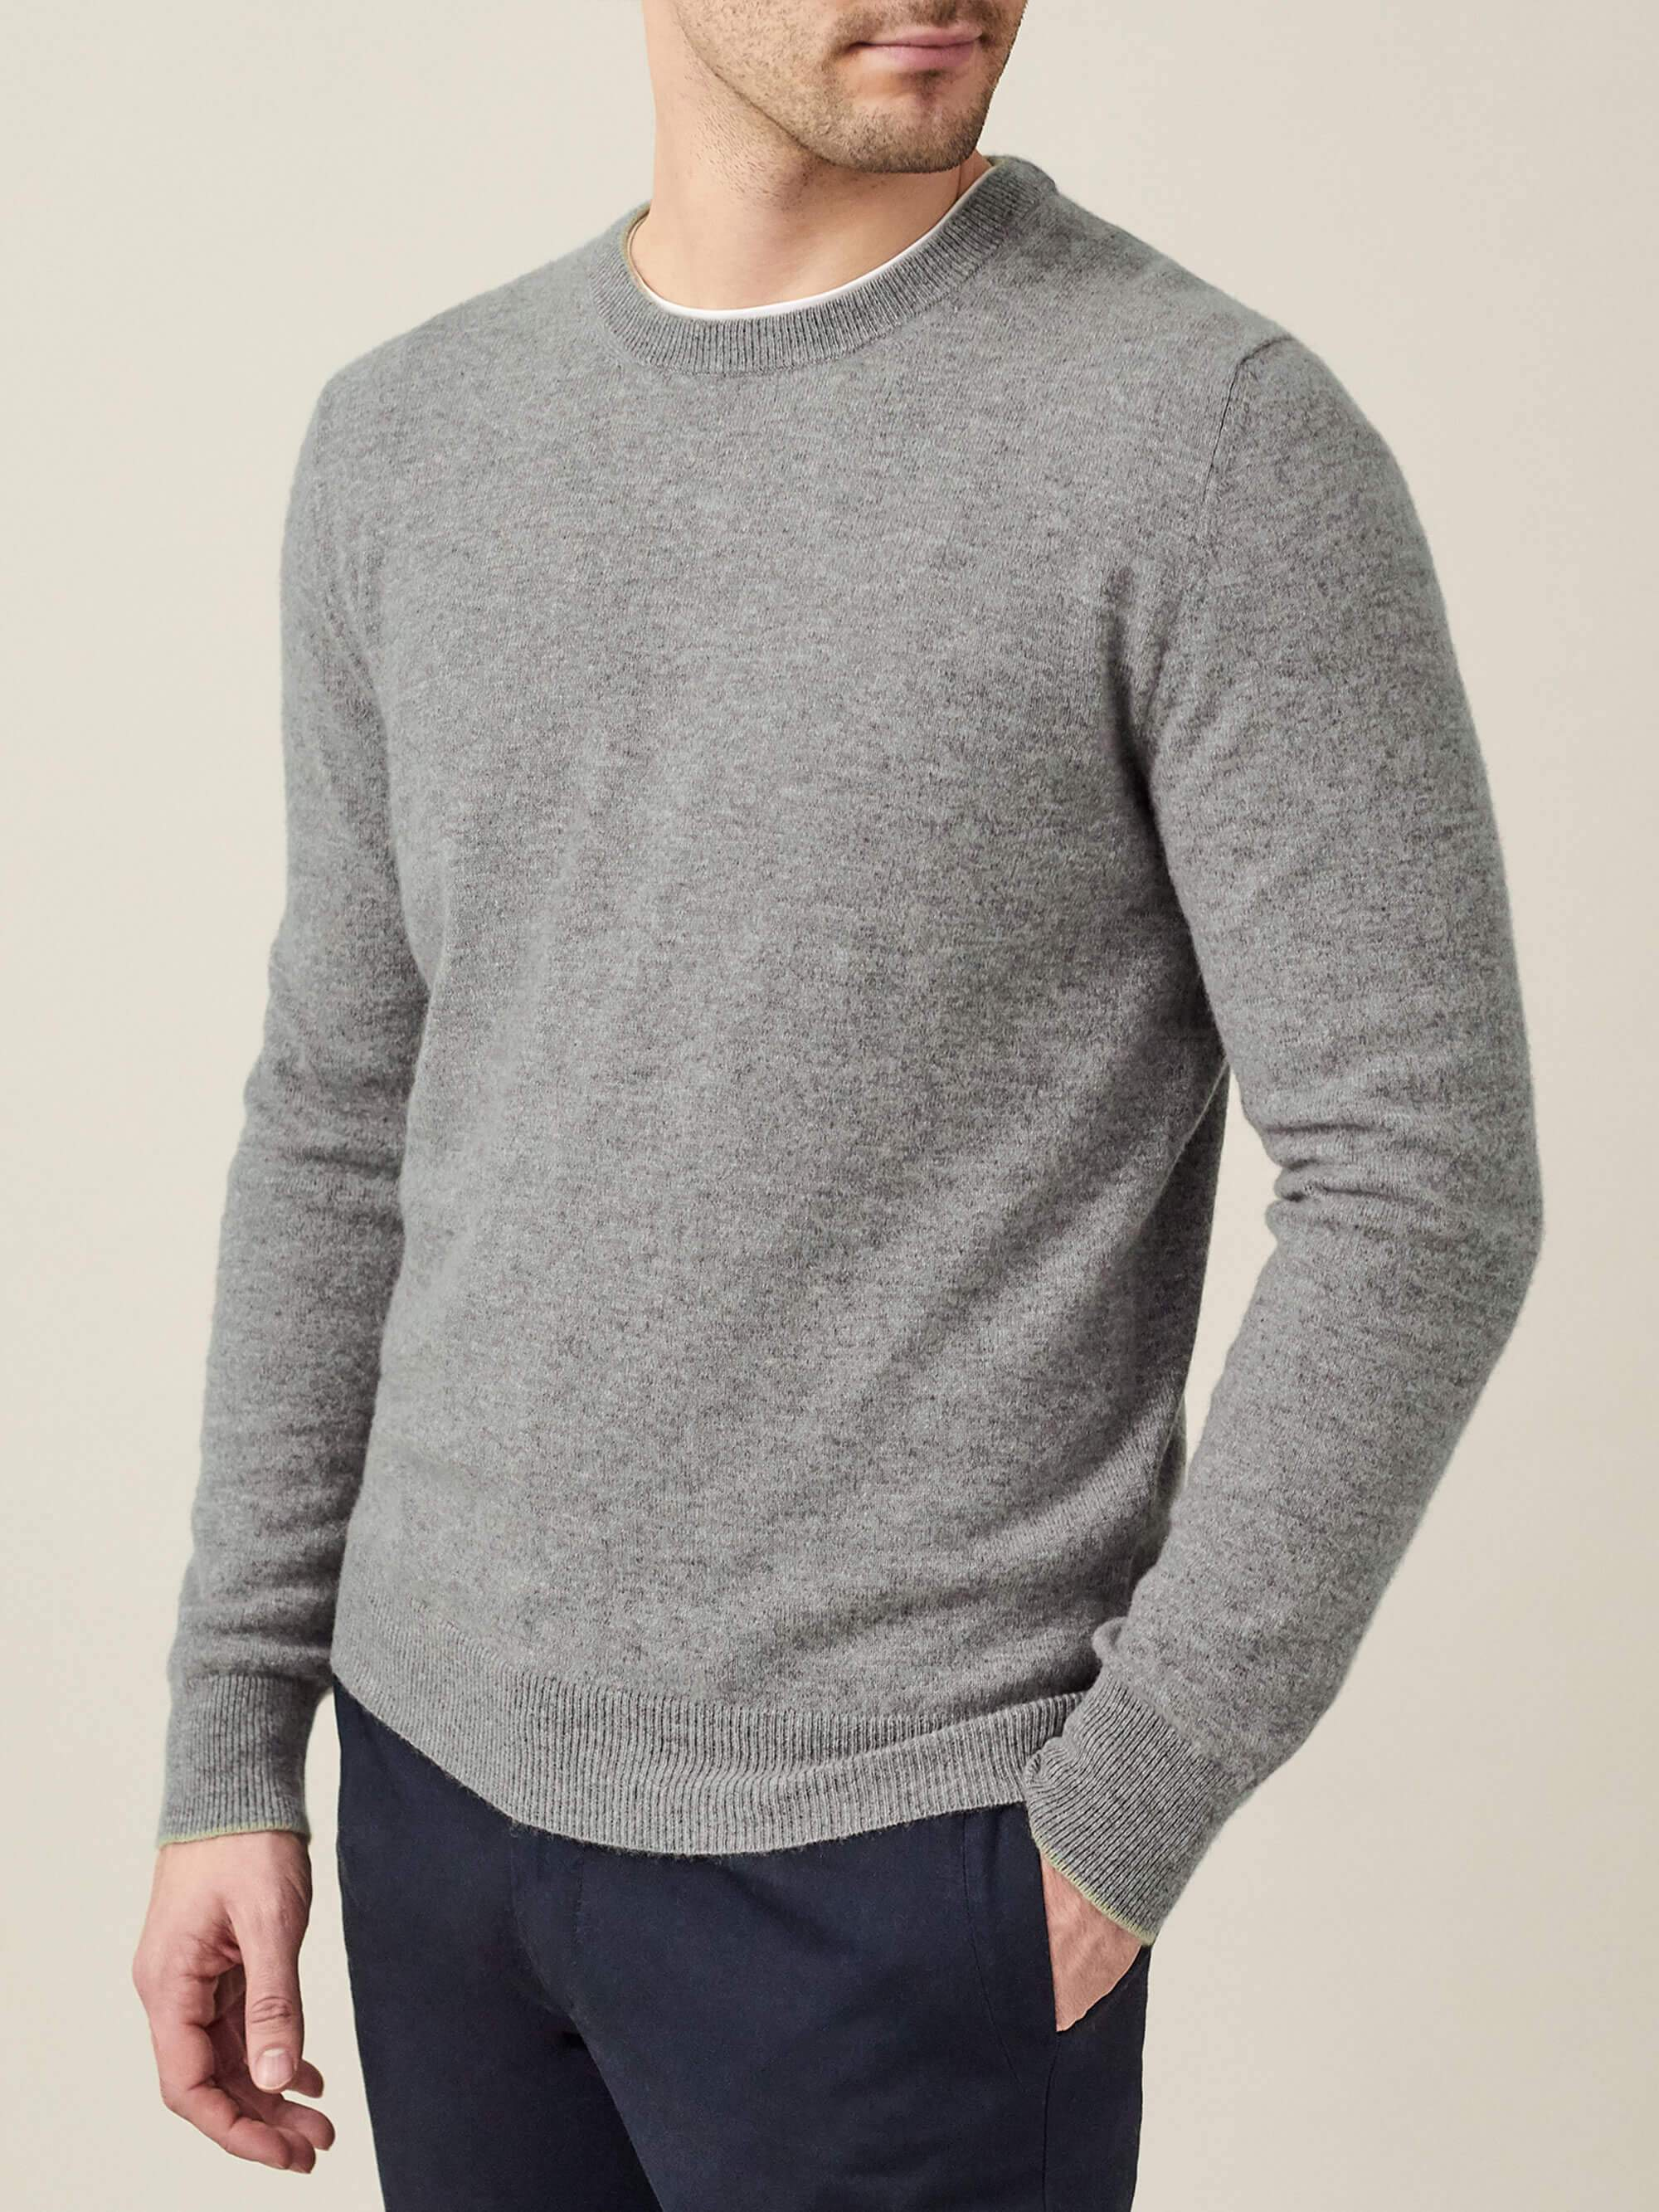 Luca Faloni Light Grey Pure Cashmere Crew Neck Made in Italy